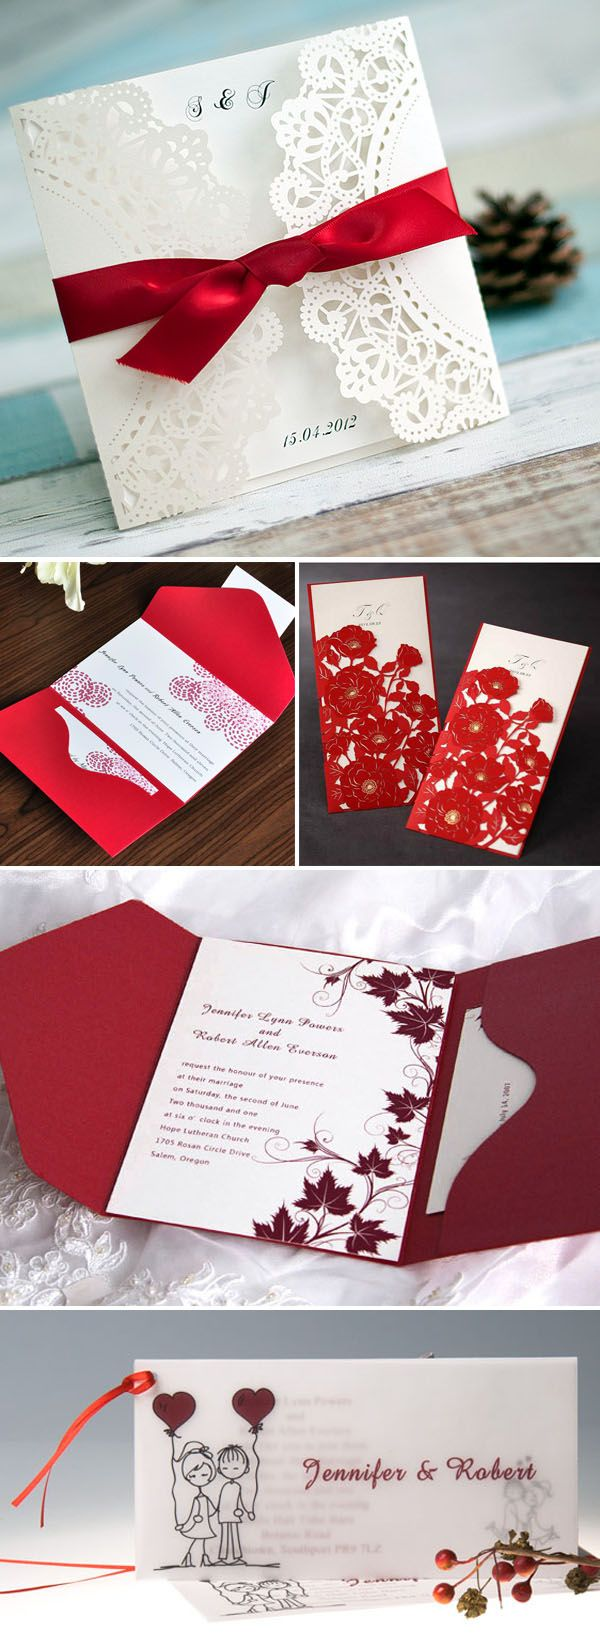 red and white wedding invitations Visit-upgradeevents.wordpress.com , To see more relavent and amazing images/tips or ideas.